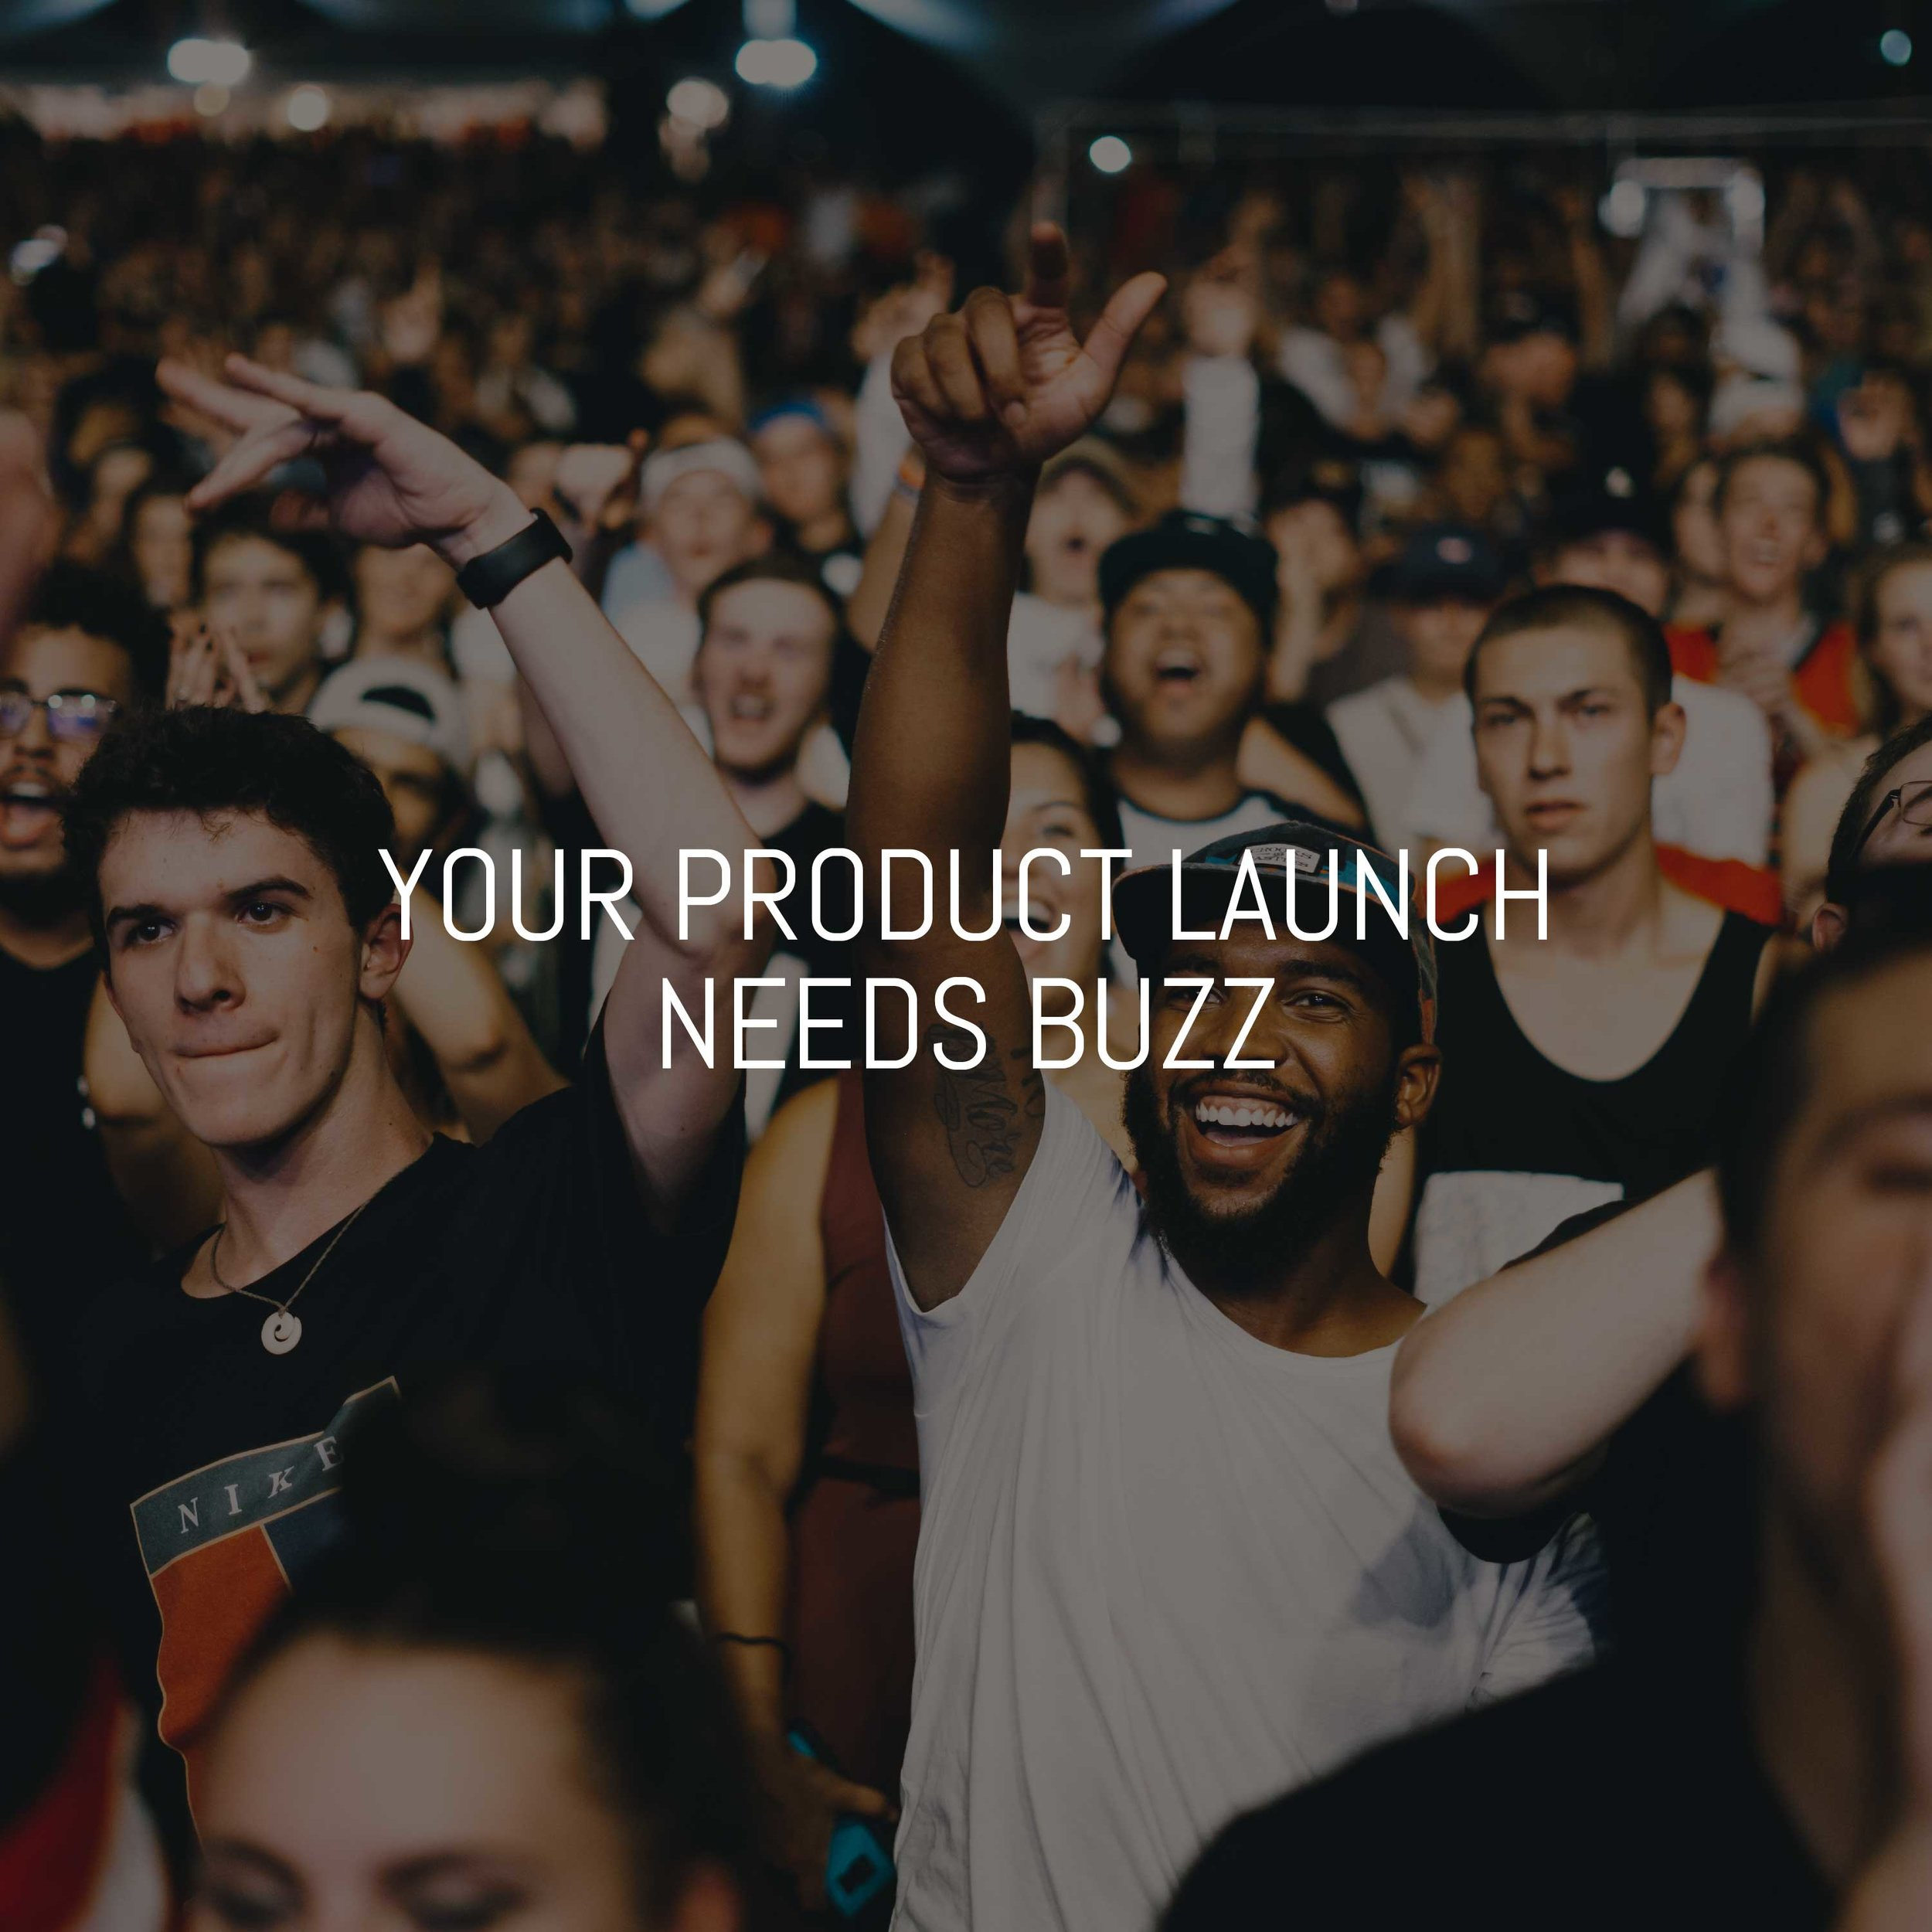 YOUR-PRODUCT-LAUNCH--NEEDS-BUZZ.jpg